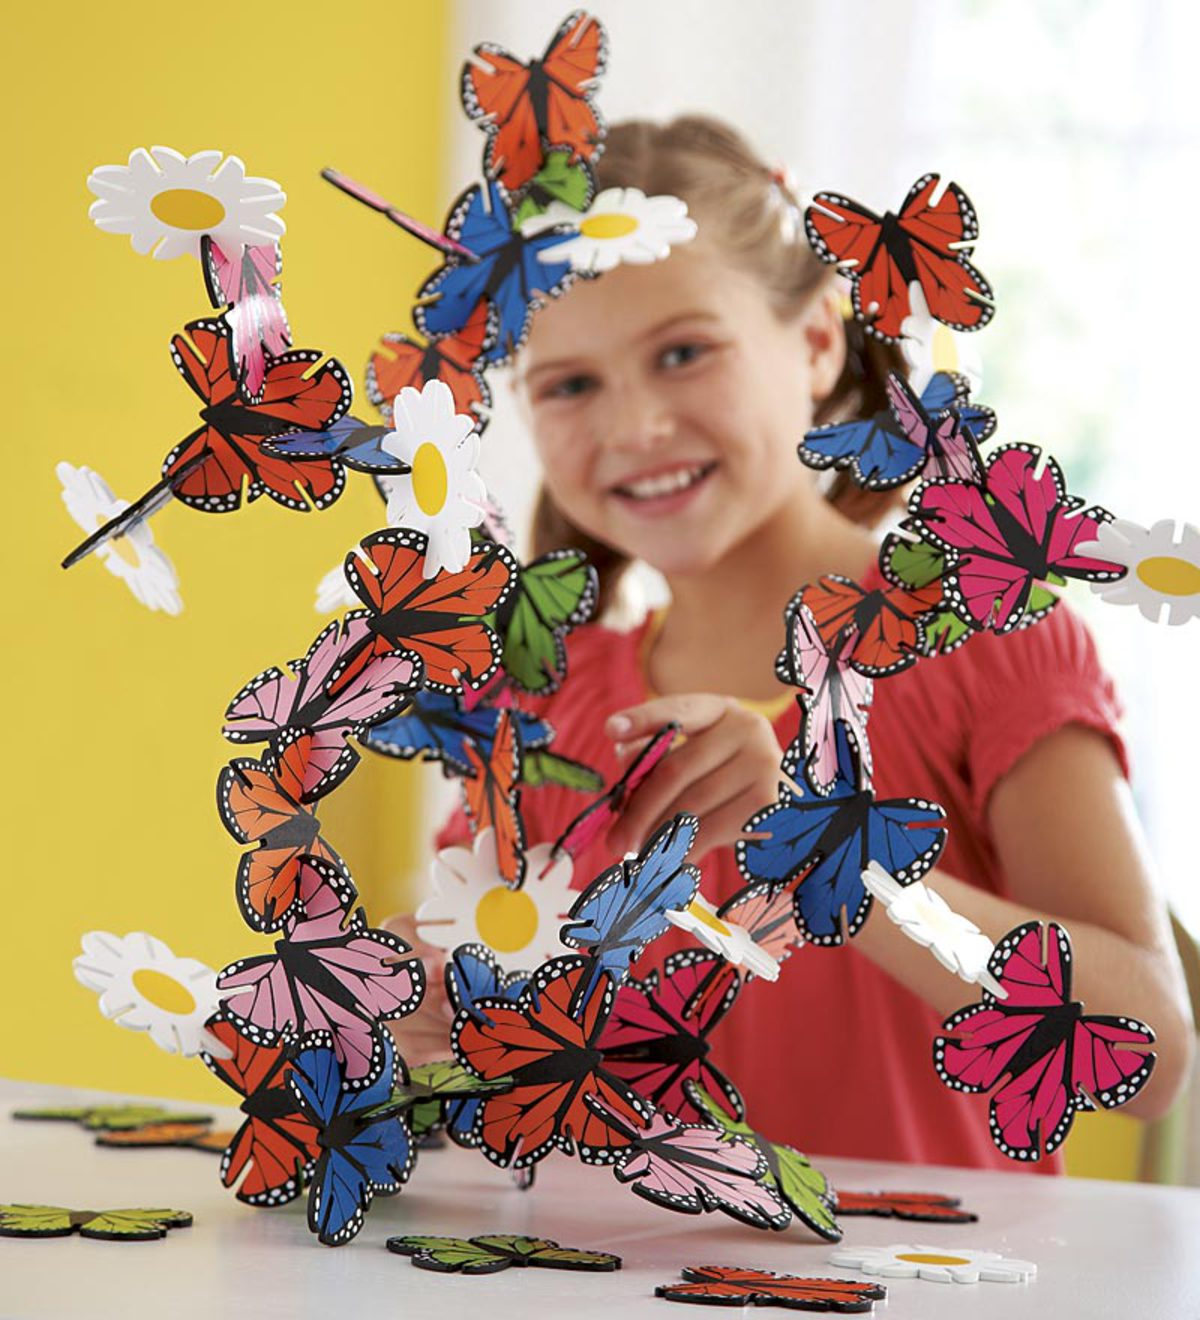 Connectagons® 62-Piece Butterflies and Flowers Creative Building Set